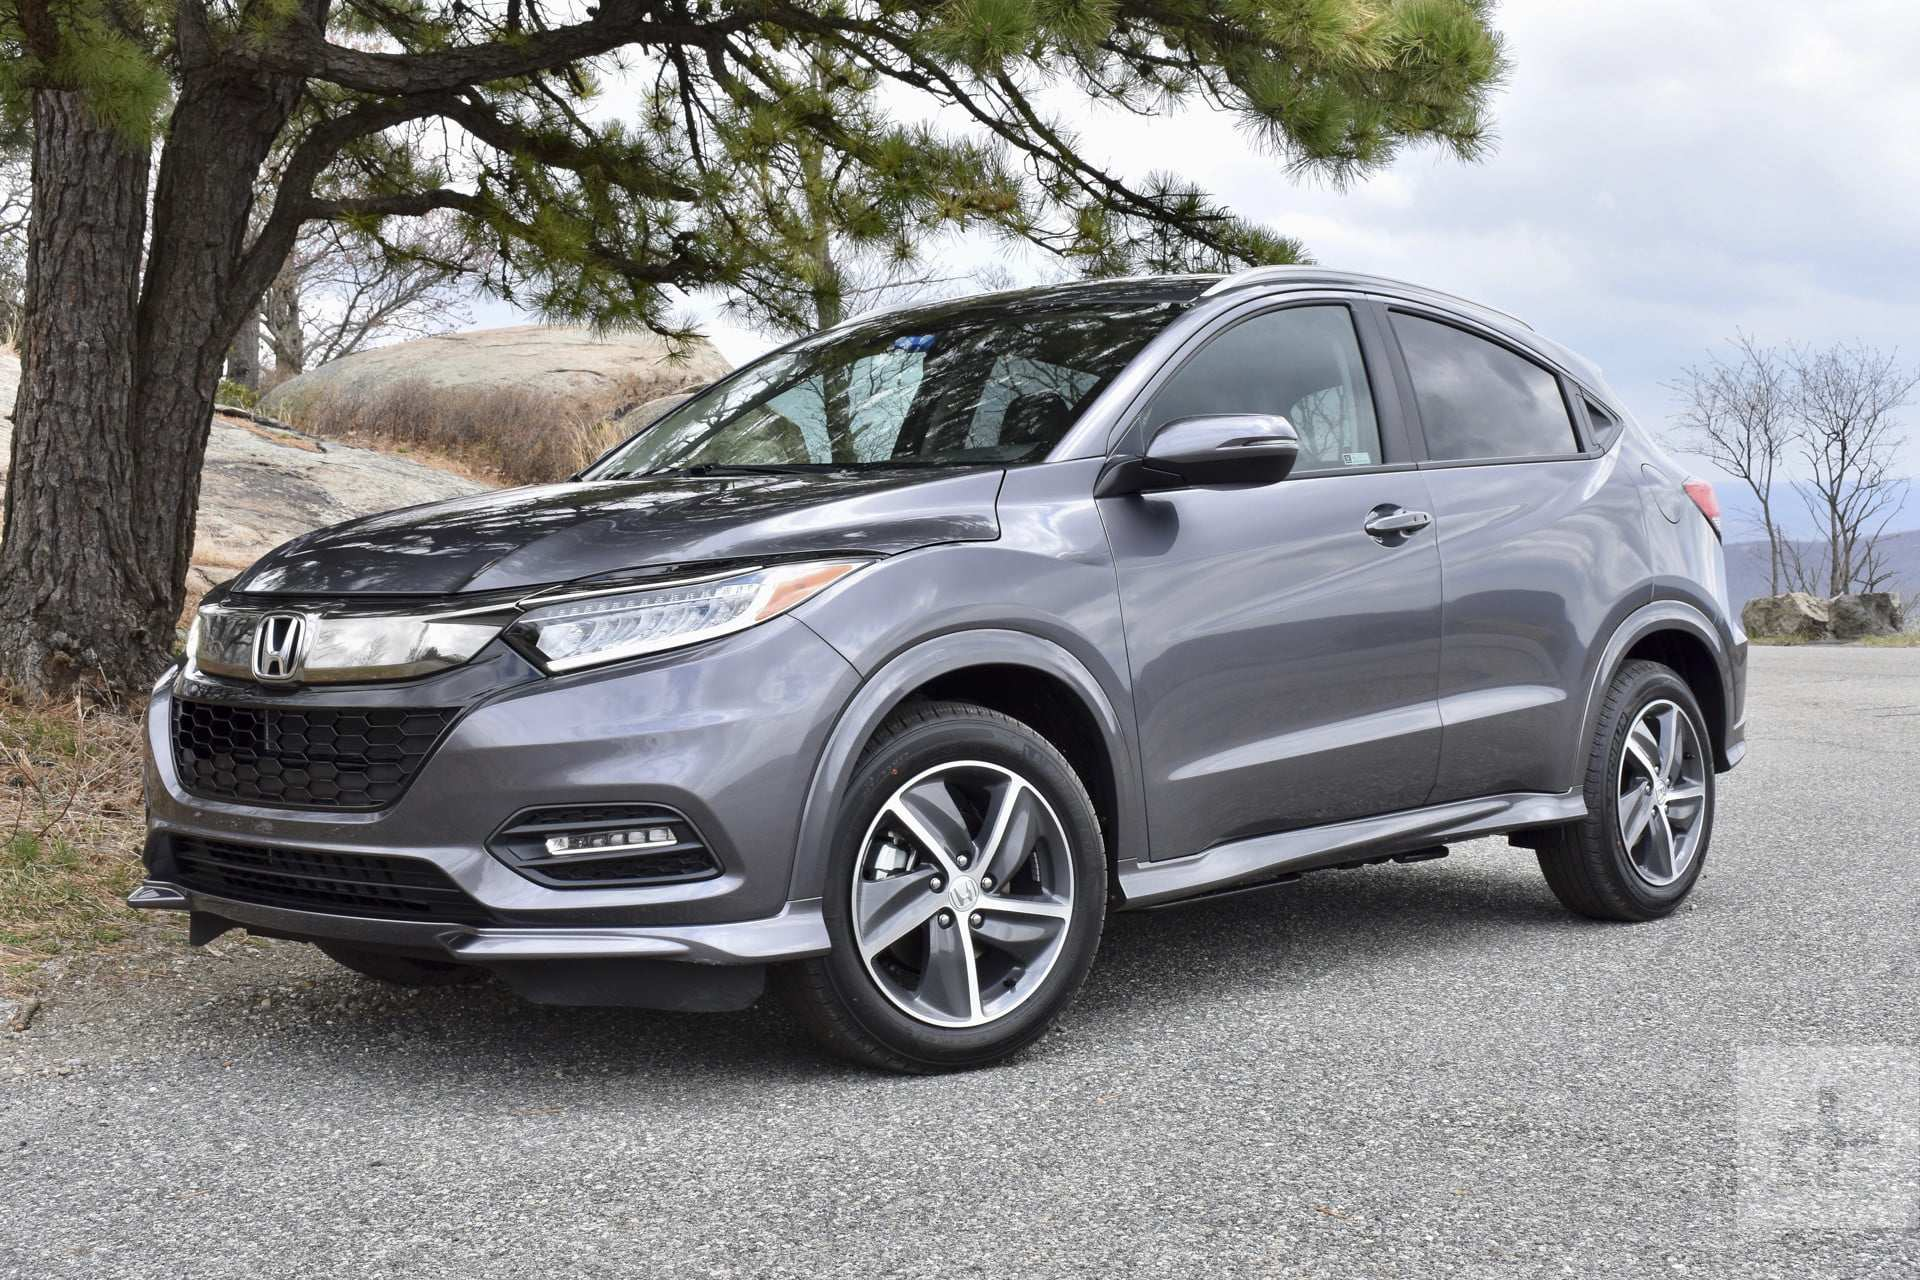 70 The Best 2019 Honda Hr V Price And Review